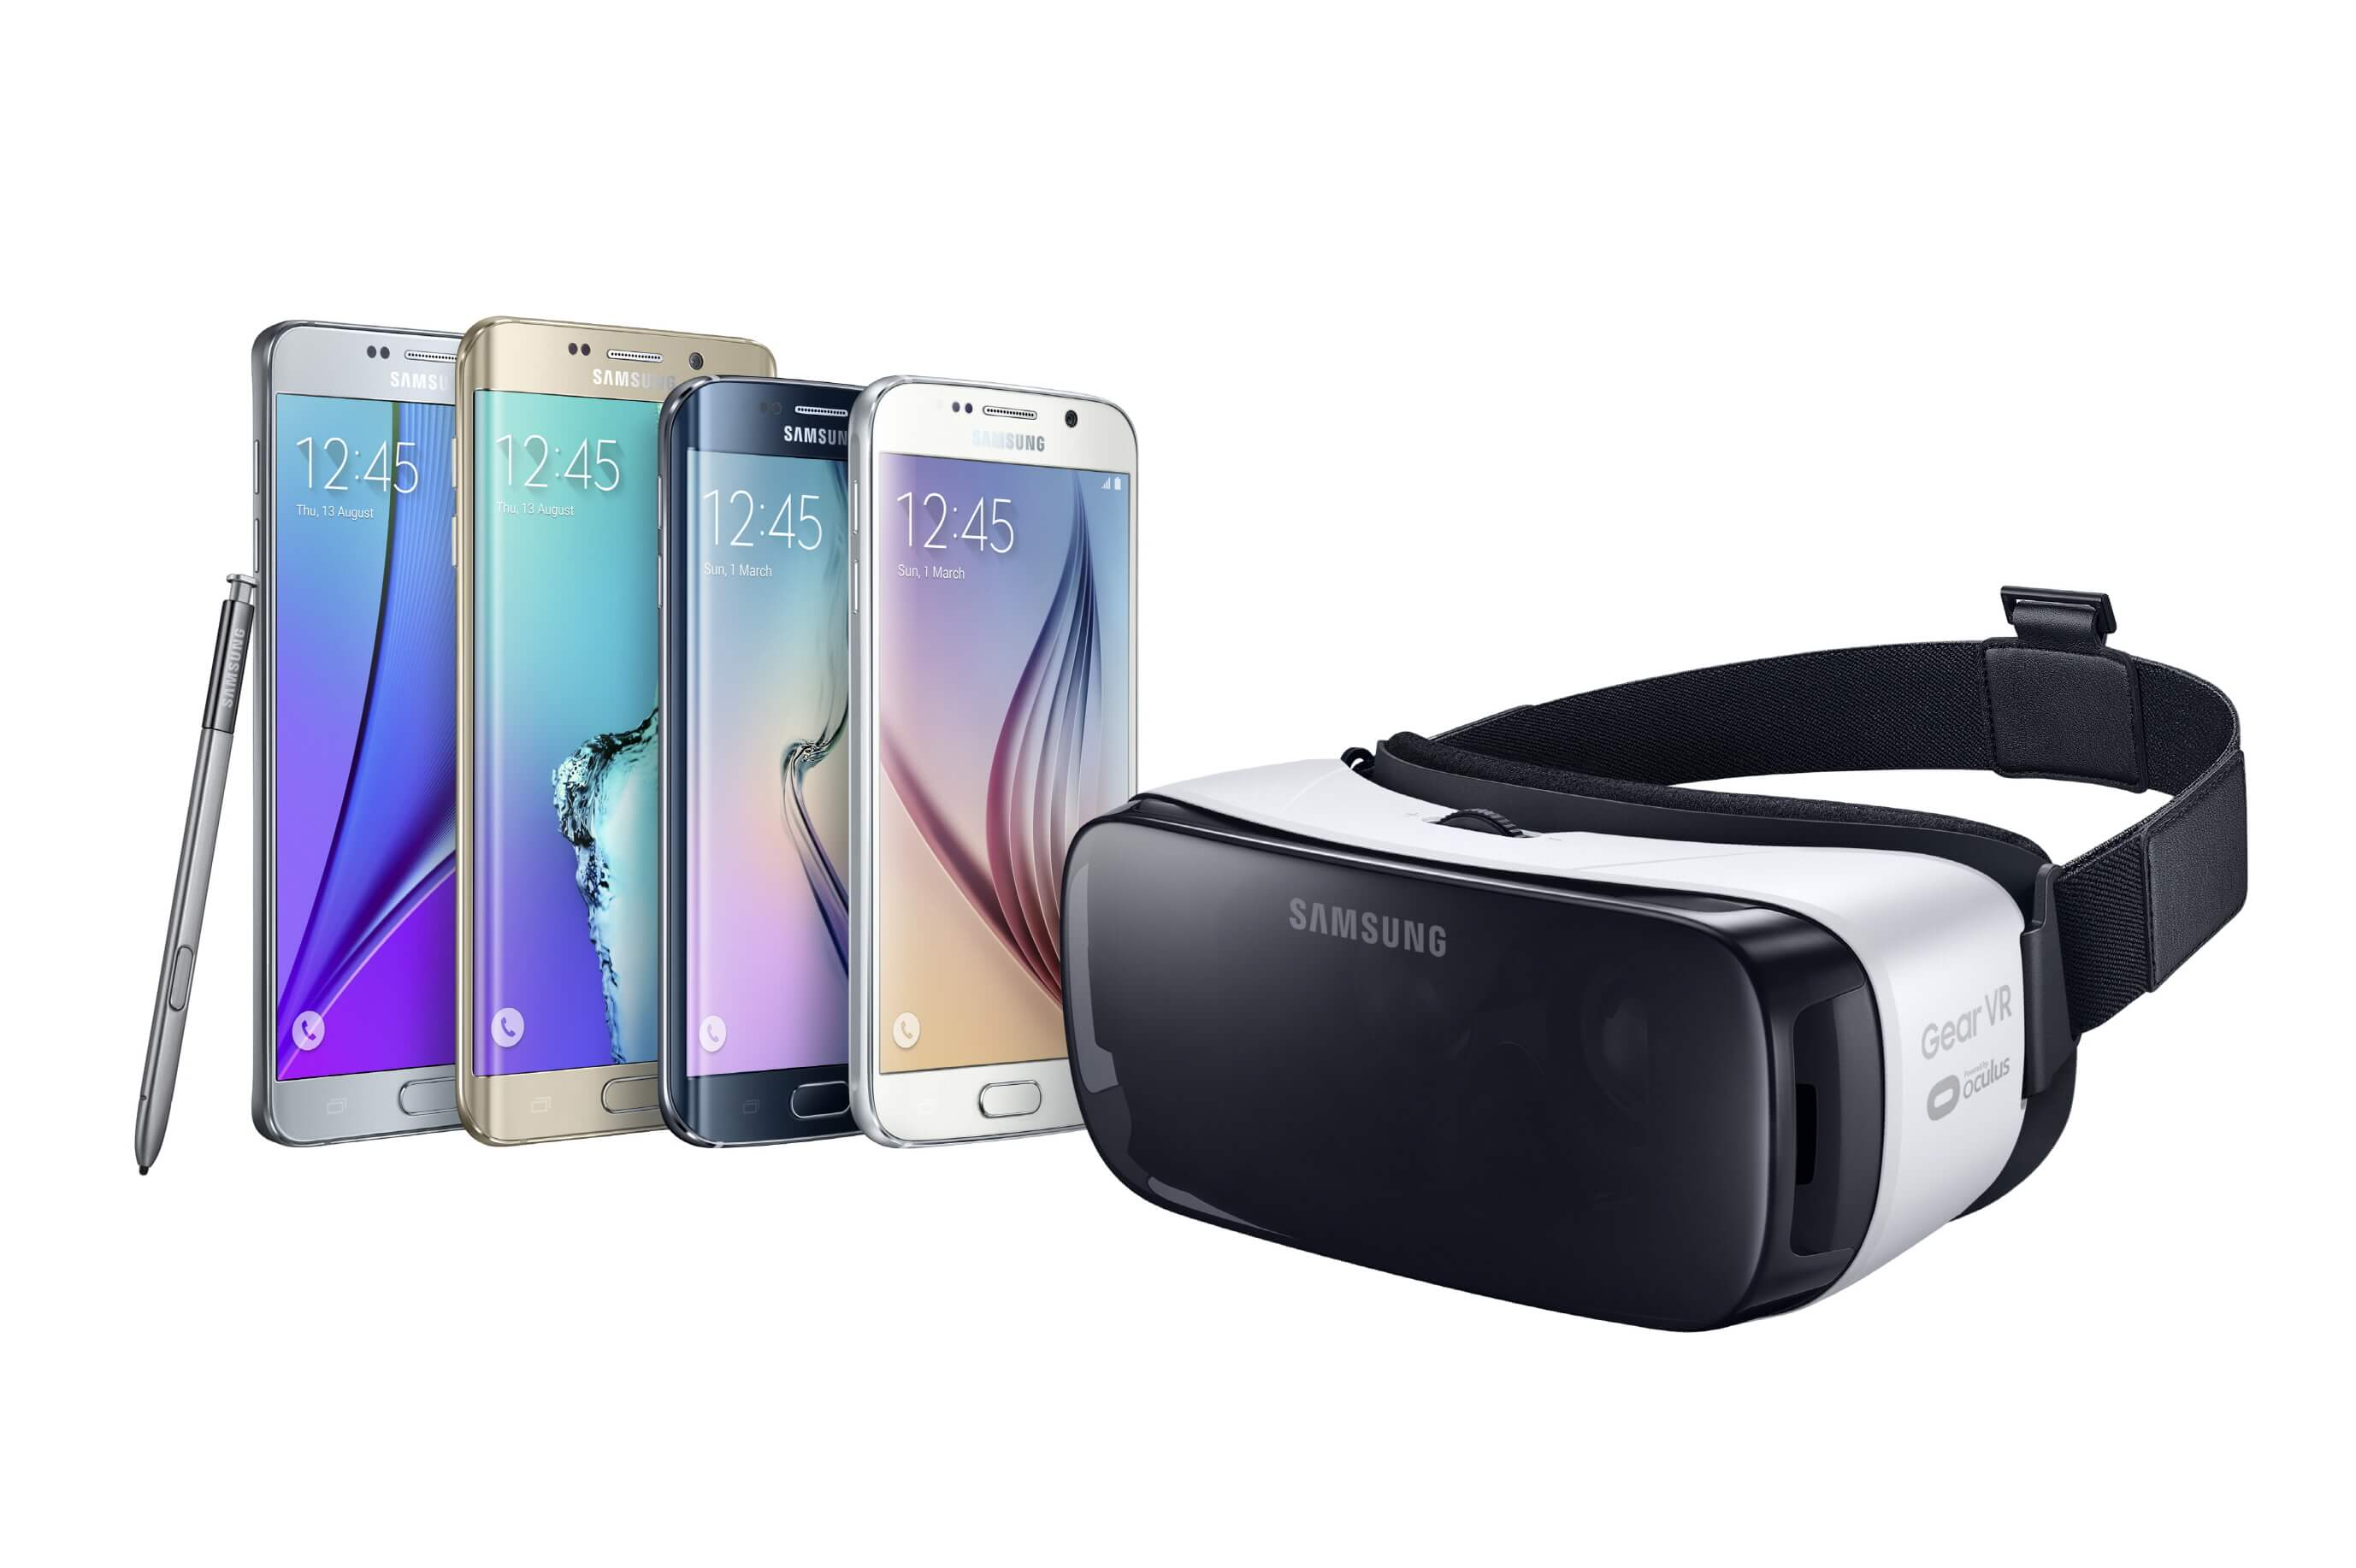 samsung-gear-vr-review-02608